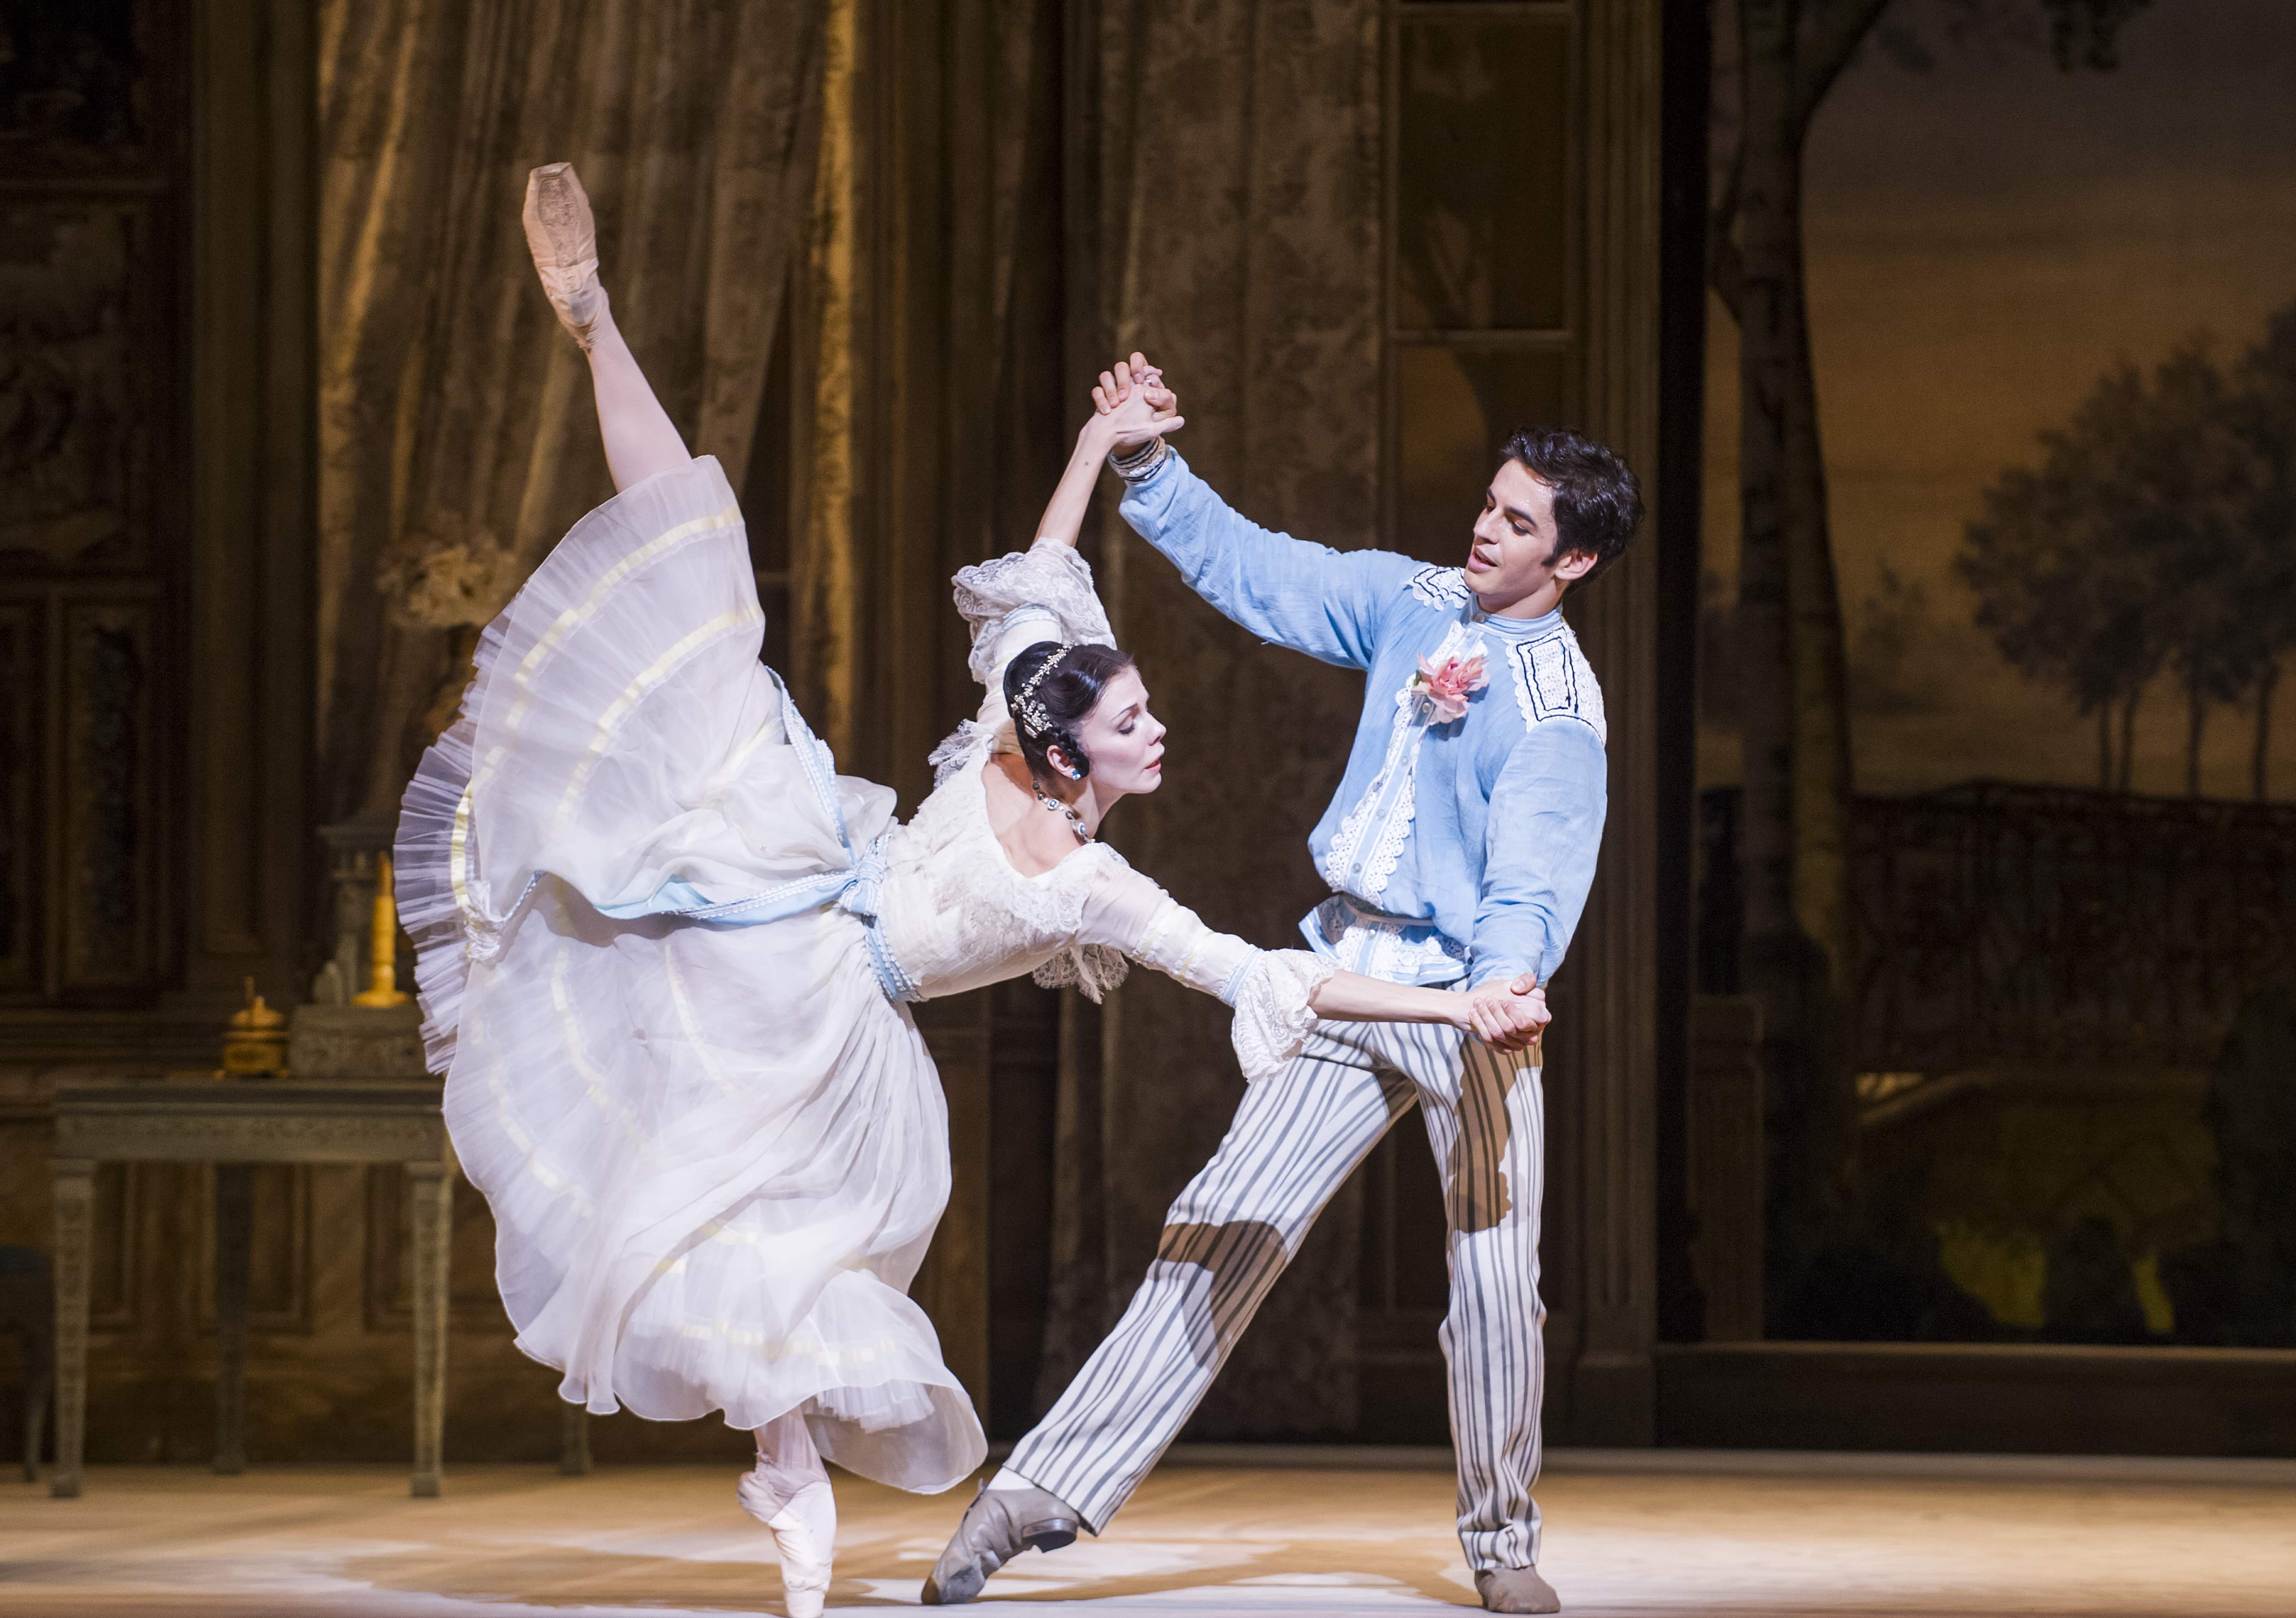 A Month in the Country. Natalia Osipova and Federico Bonelli. ©ROH, 2014. Photographed by Tristram Kenton